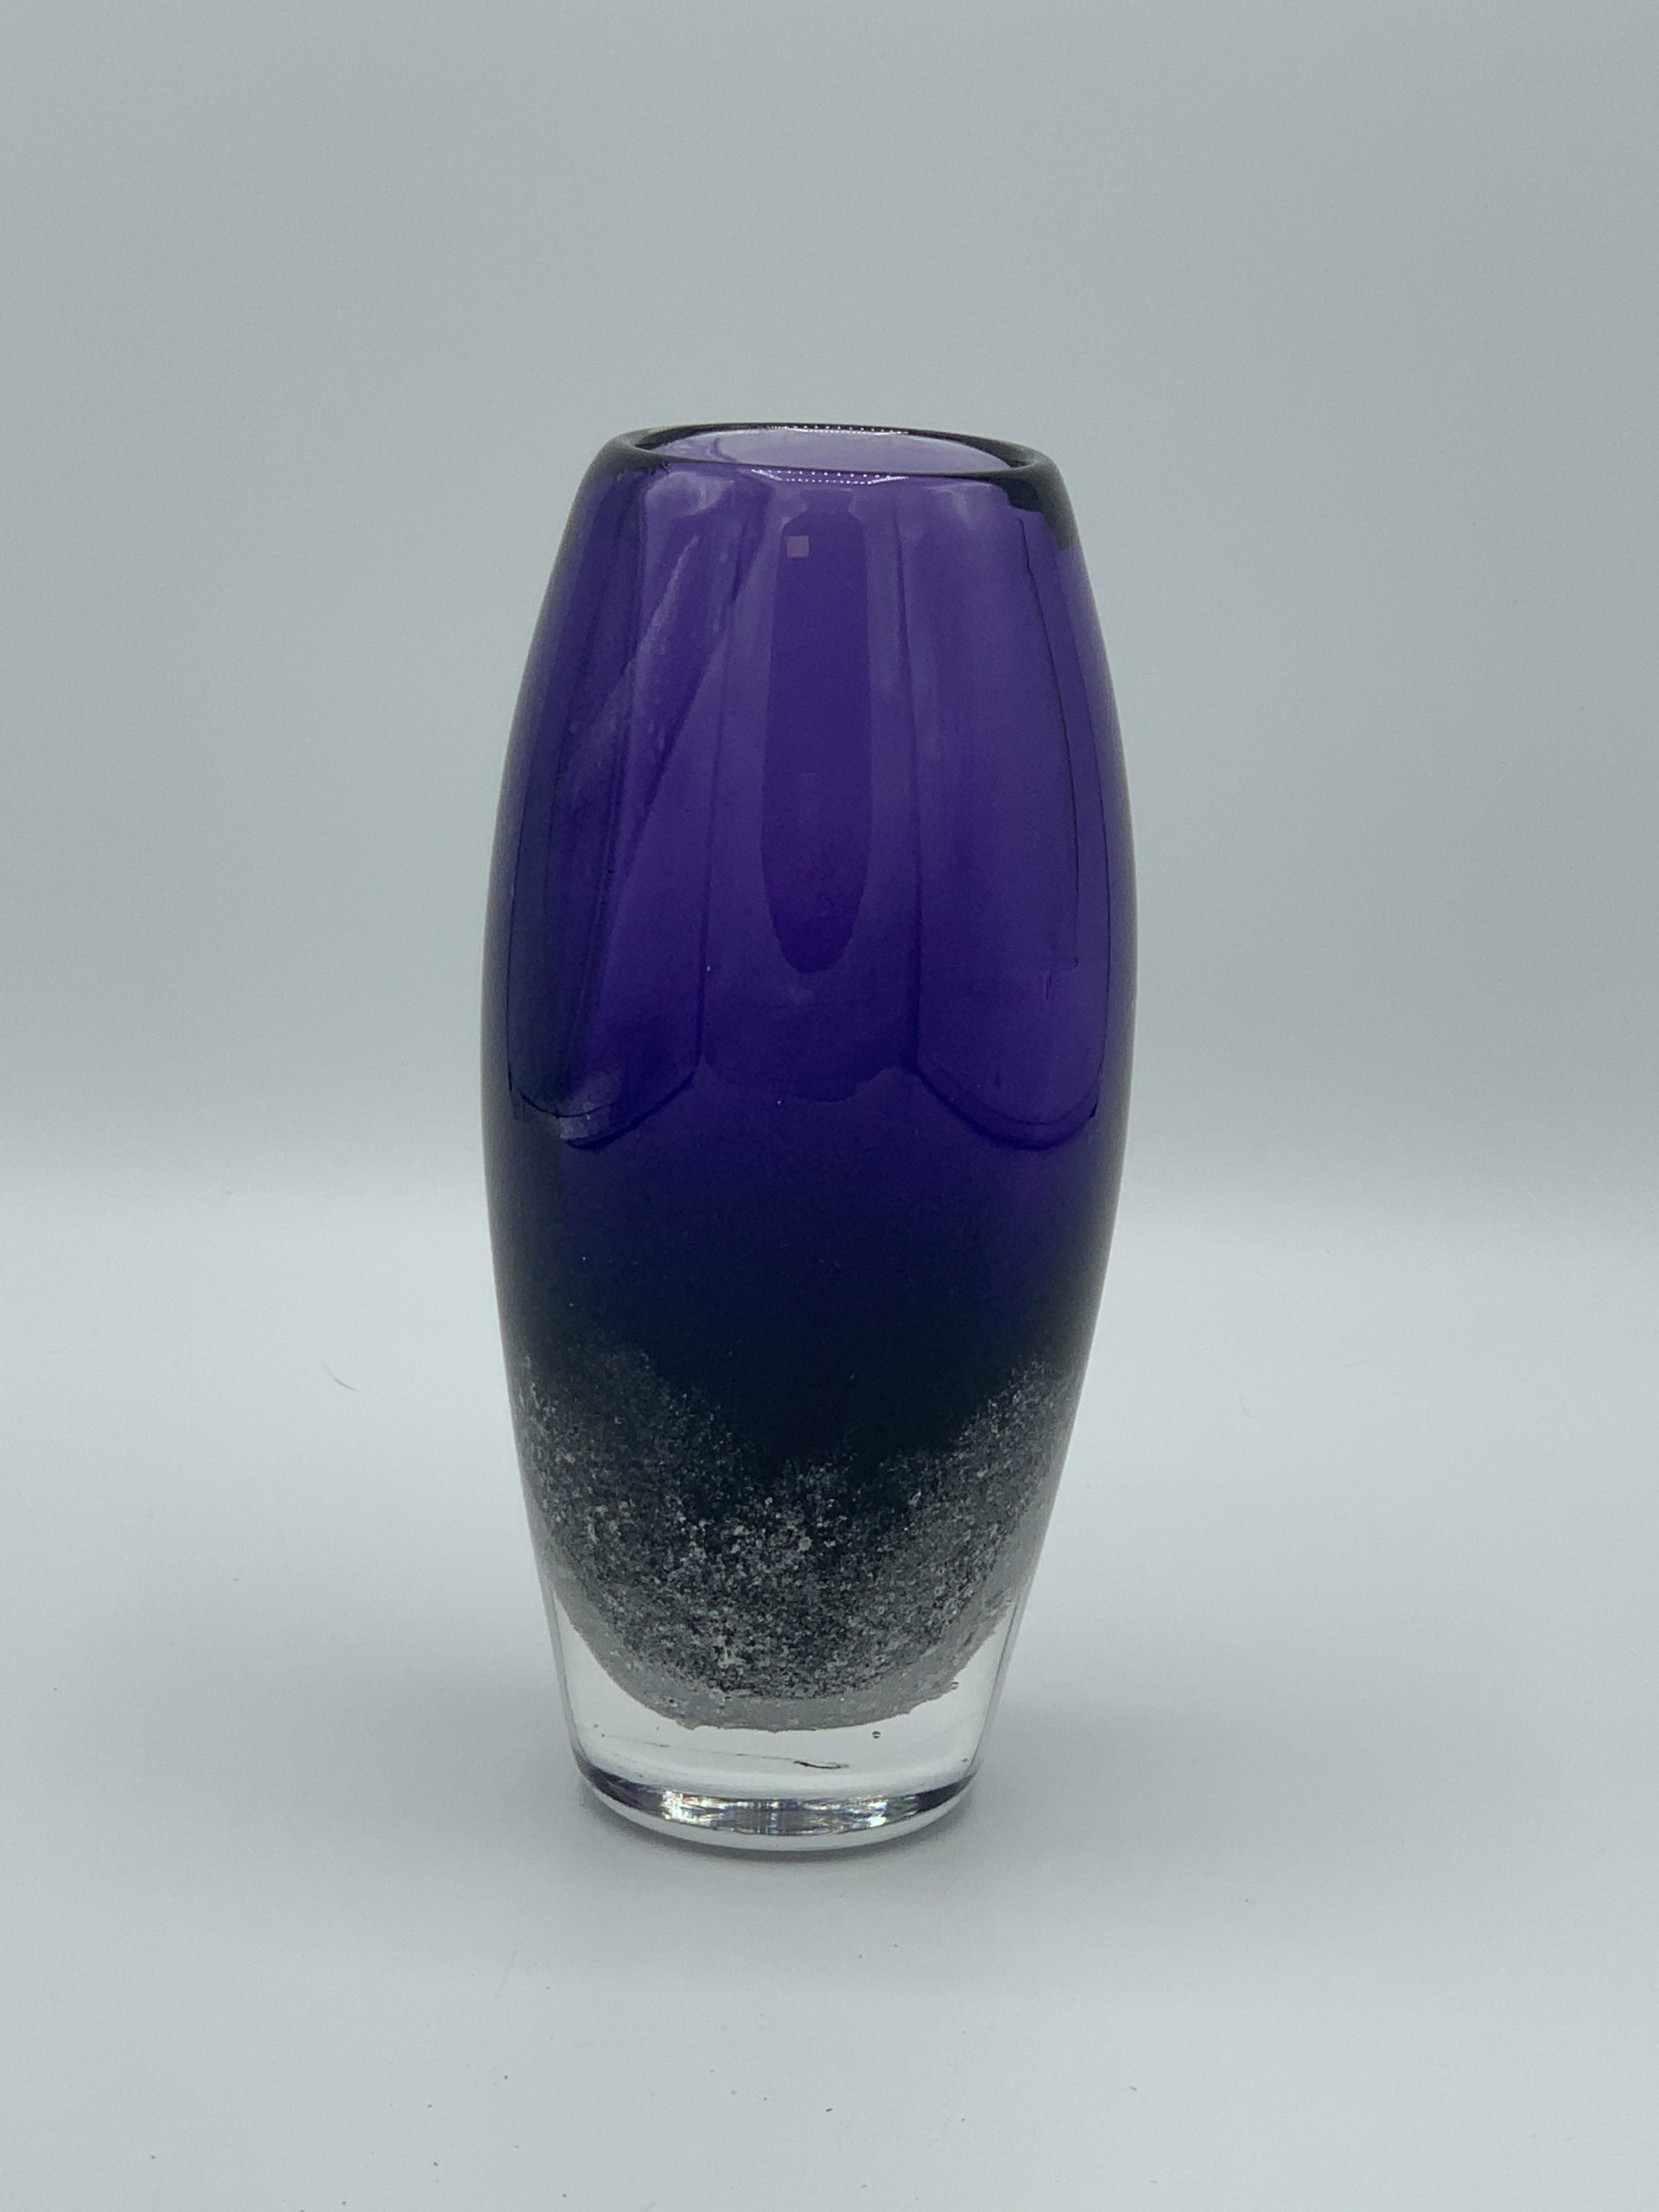 Ashes to glass art , glass art with ashes